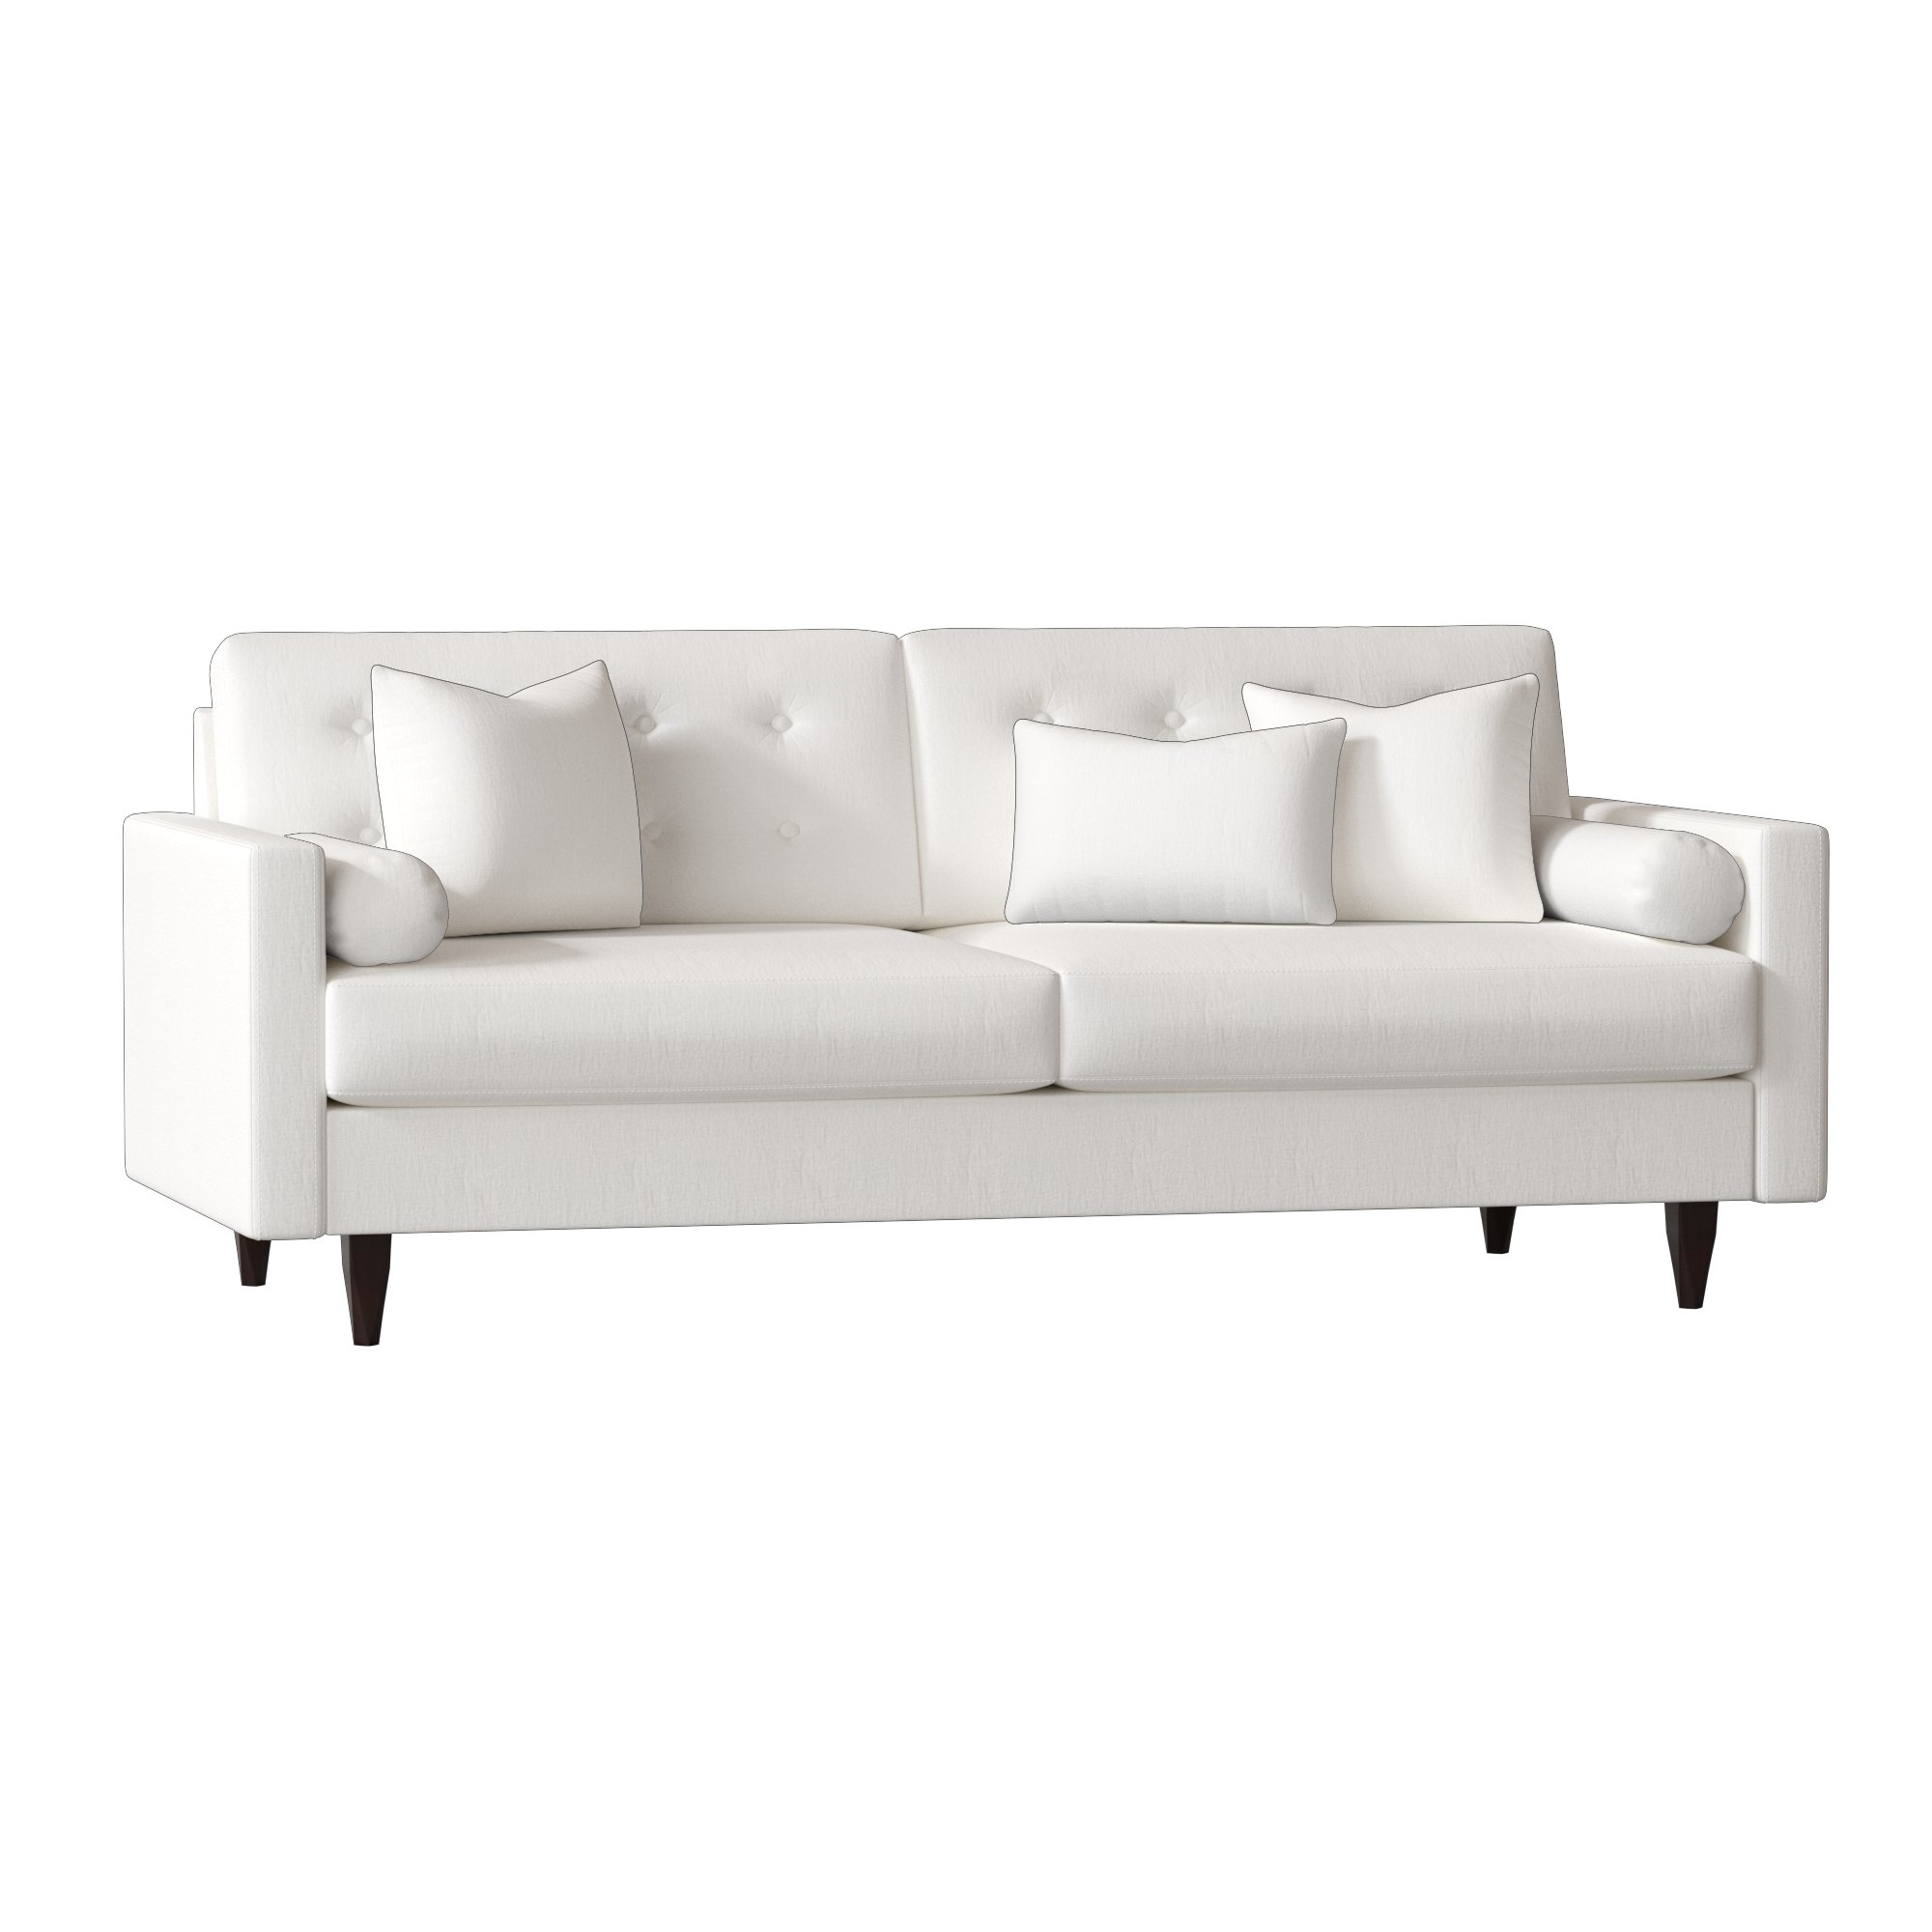 Wayfair Custom Upholstery™ Harper Sofa & Reviews | Wayfair In Harper Down 3 Piece Sectionals (View 11 of 25)